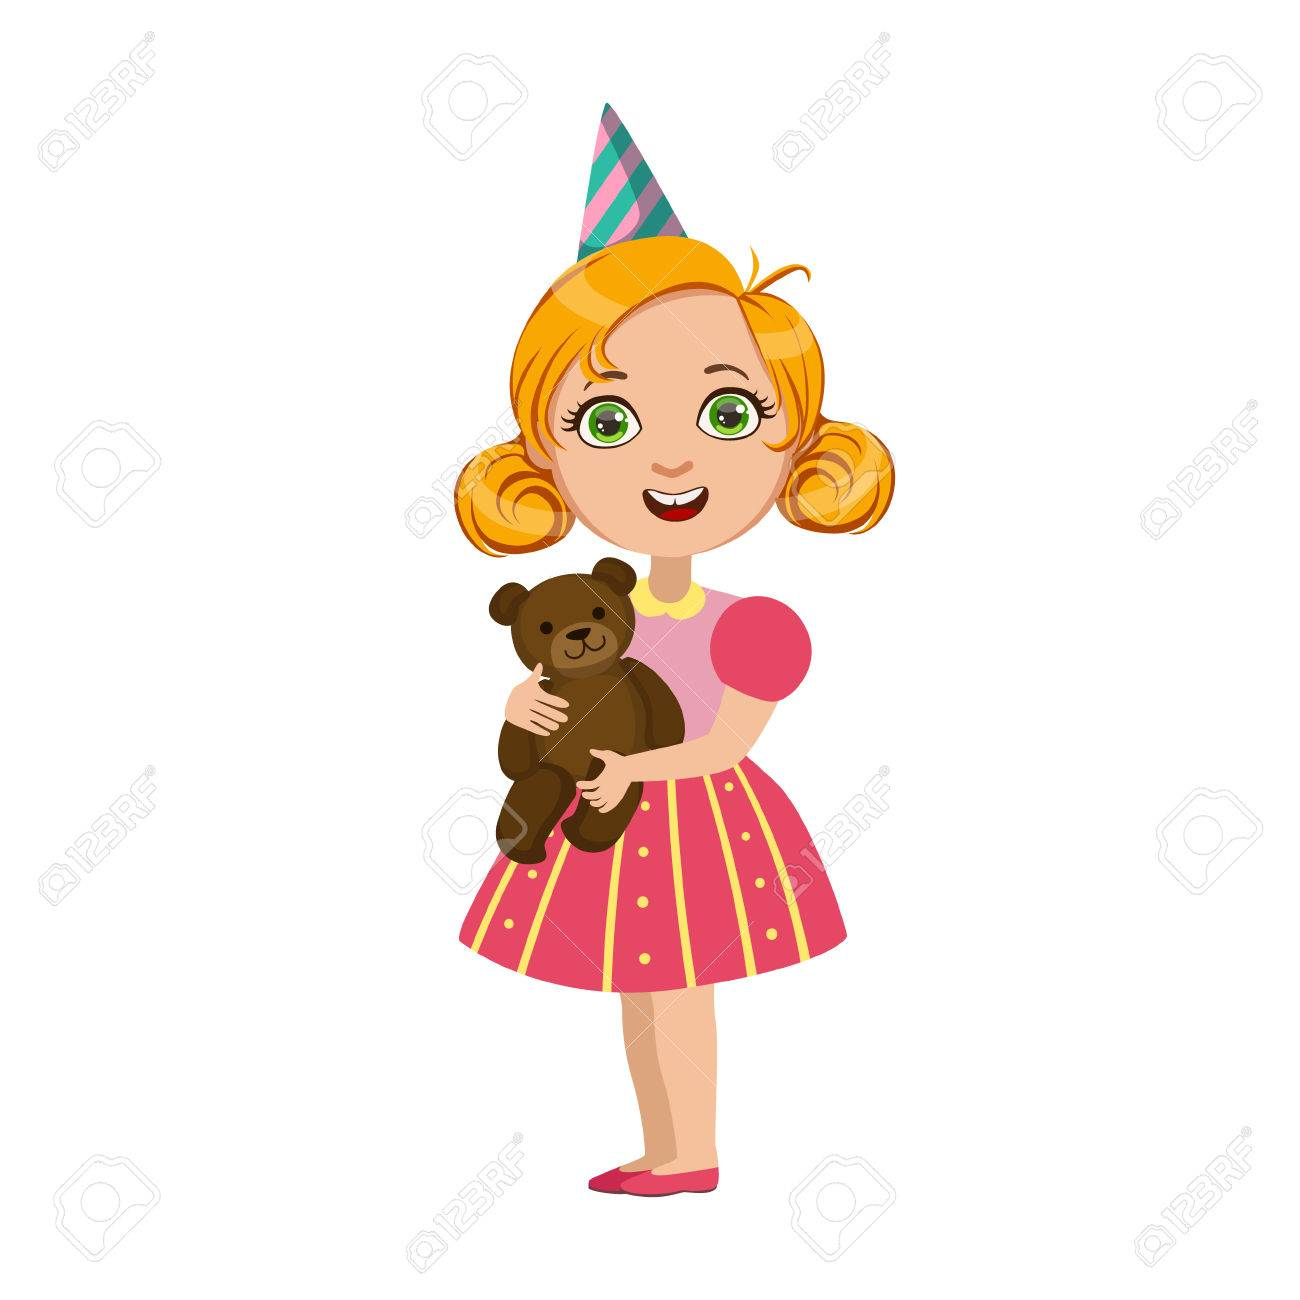 Girl With Teddy Bear Part Of Kids At The Birthday Party Set Royalty Free Cliparts Vectors And Stock Illustration Image 74439712